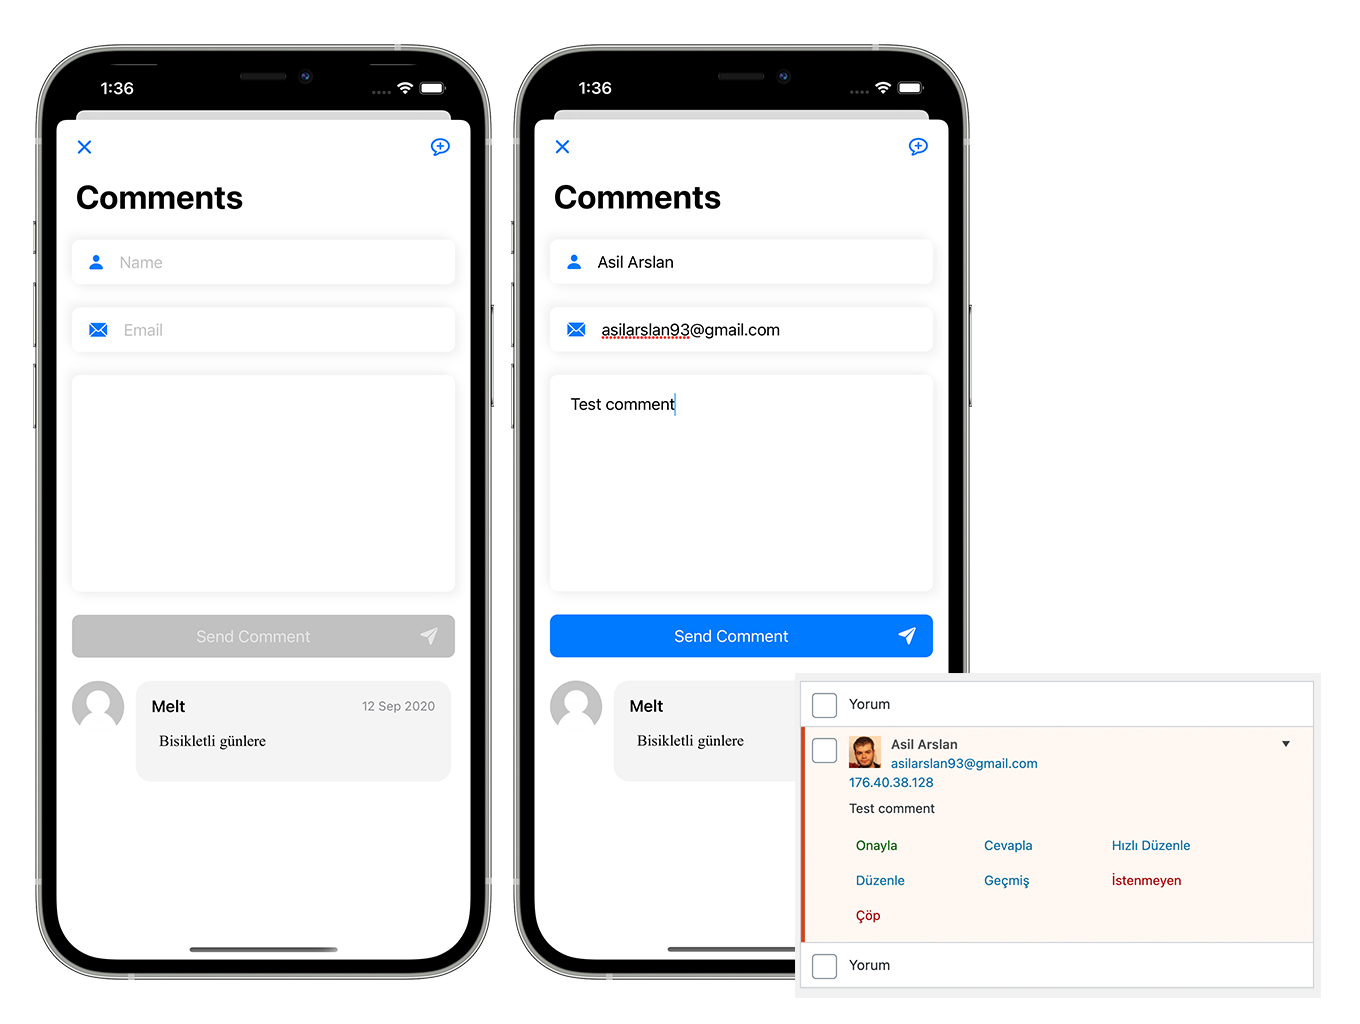 Blog and News SwiftUI iOS App for WordPress Site with AdMob, Firebase Push Notification and Widget - 11